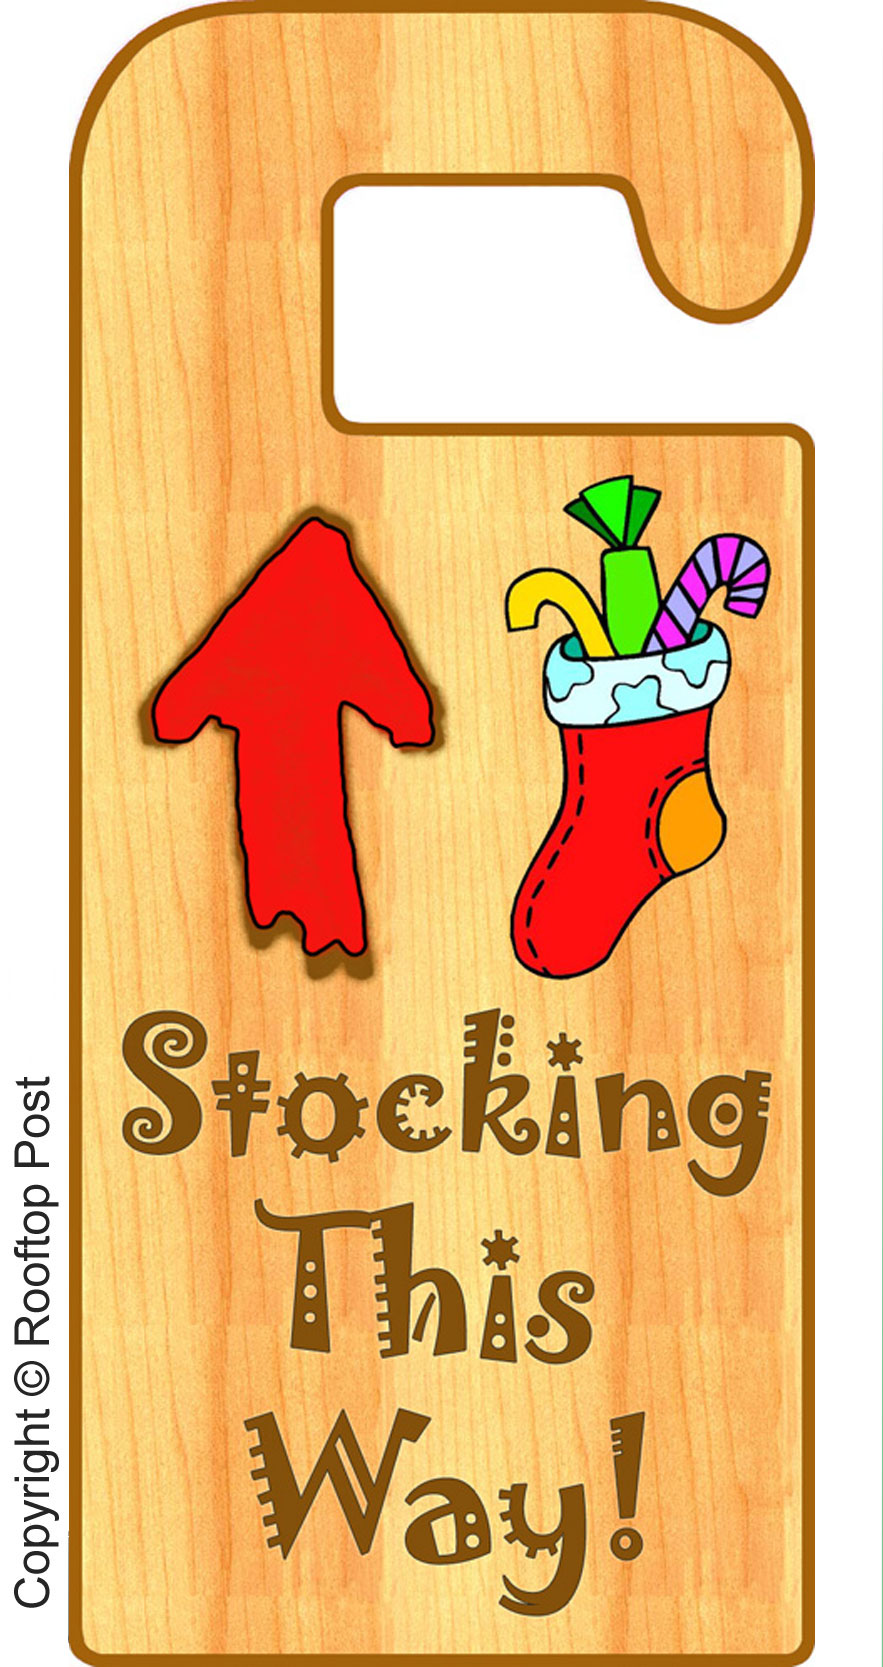 Printable door hanger for Christmas Eve telling Santa there's a stocking to fill